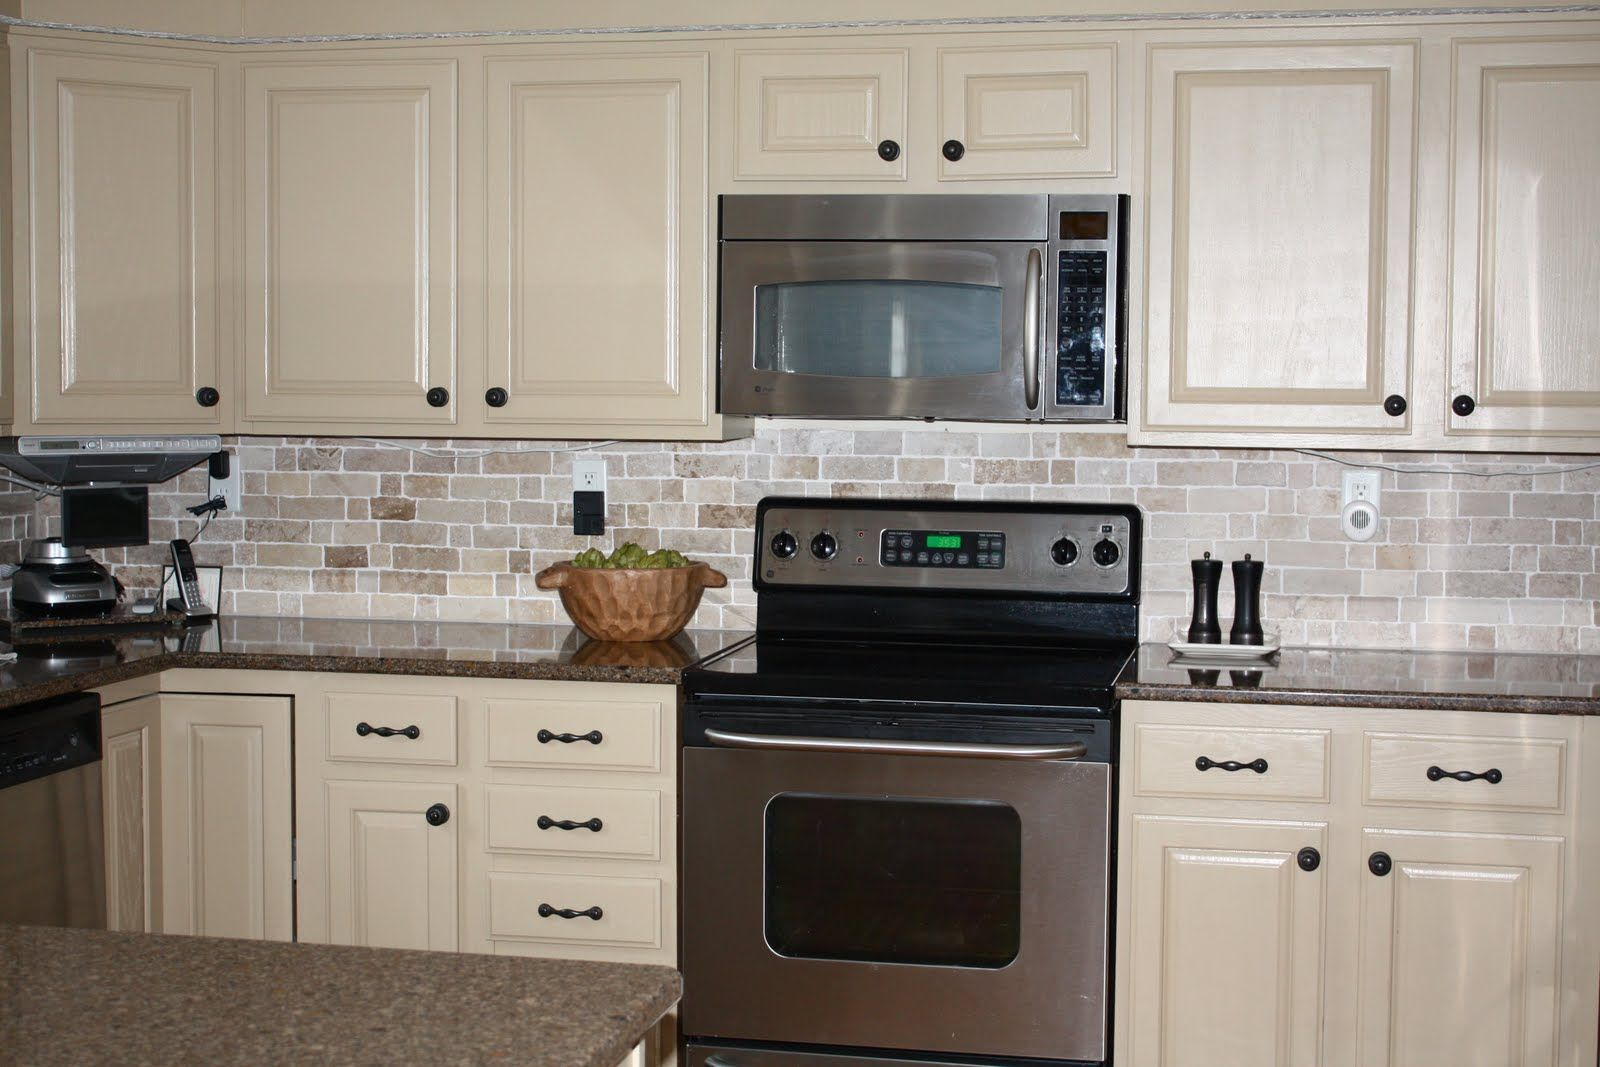 Cream Color Kitchen Cabinets Love The Cream Color Painted Kitchen Cabinets With Dark Hardware